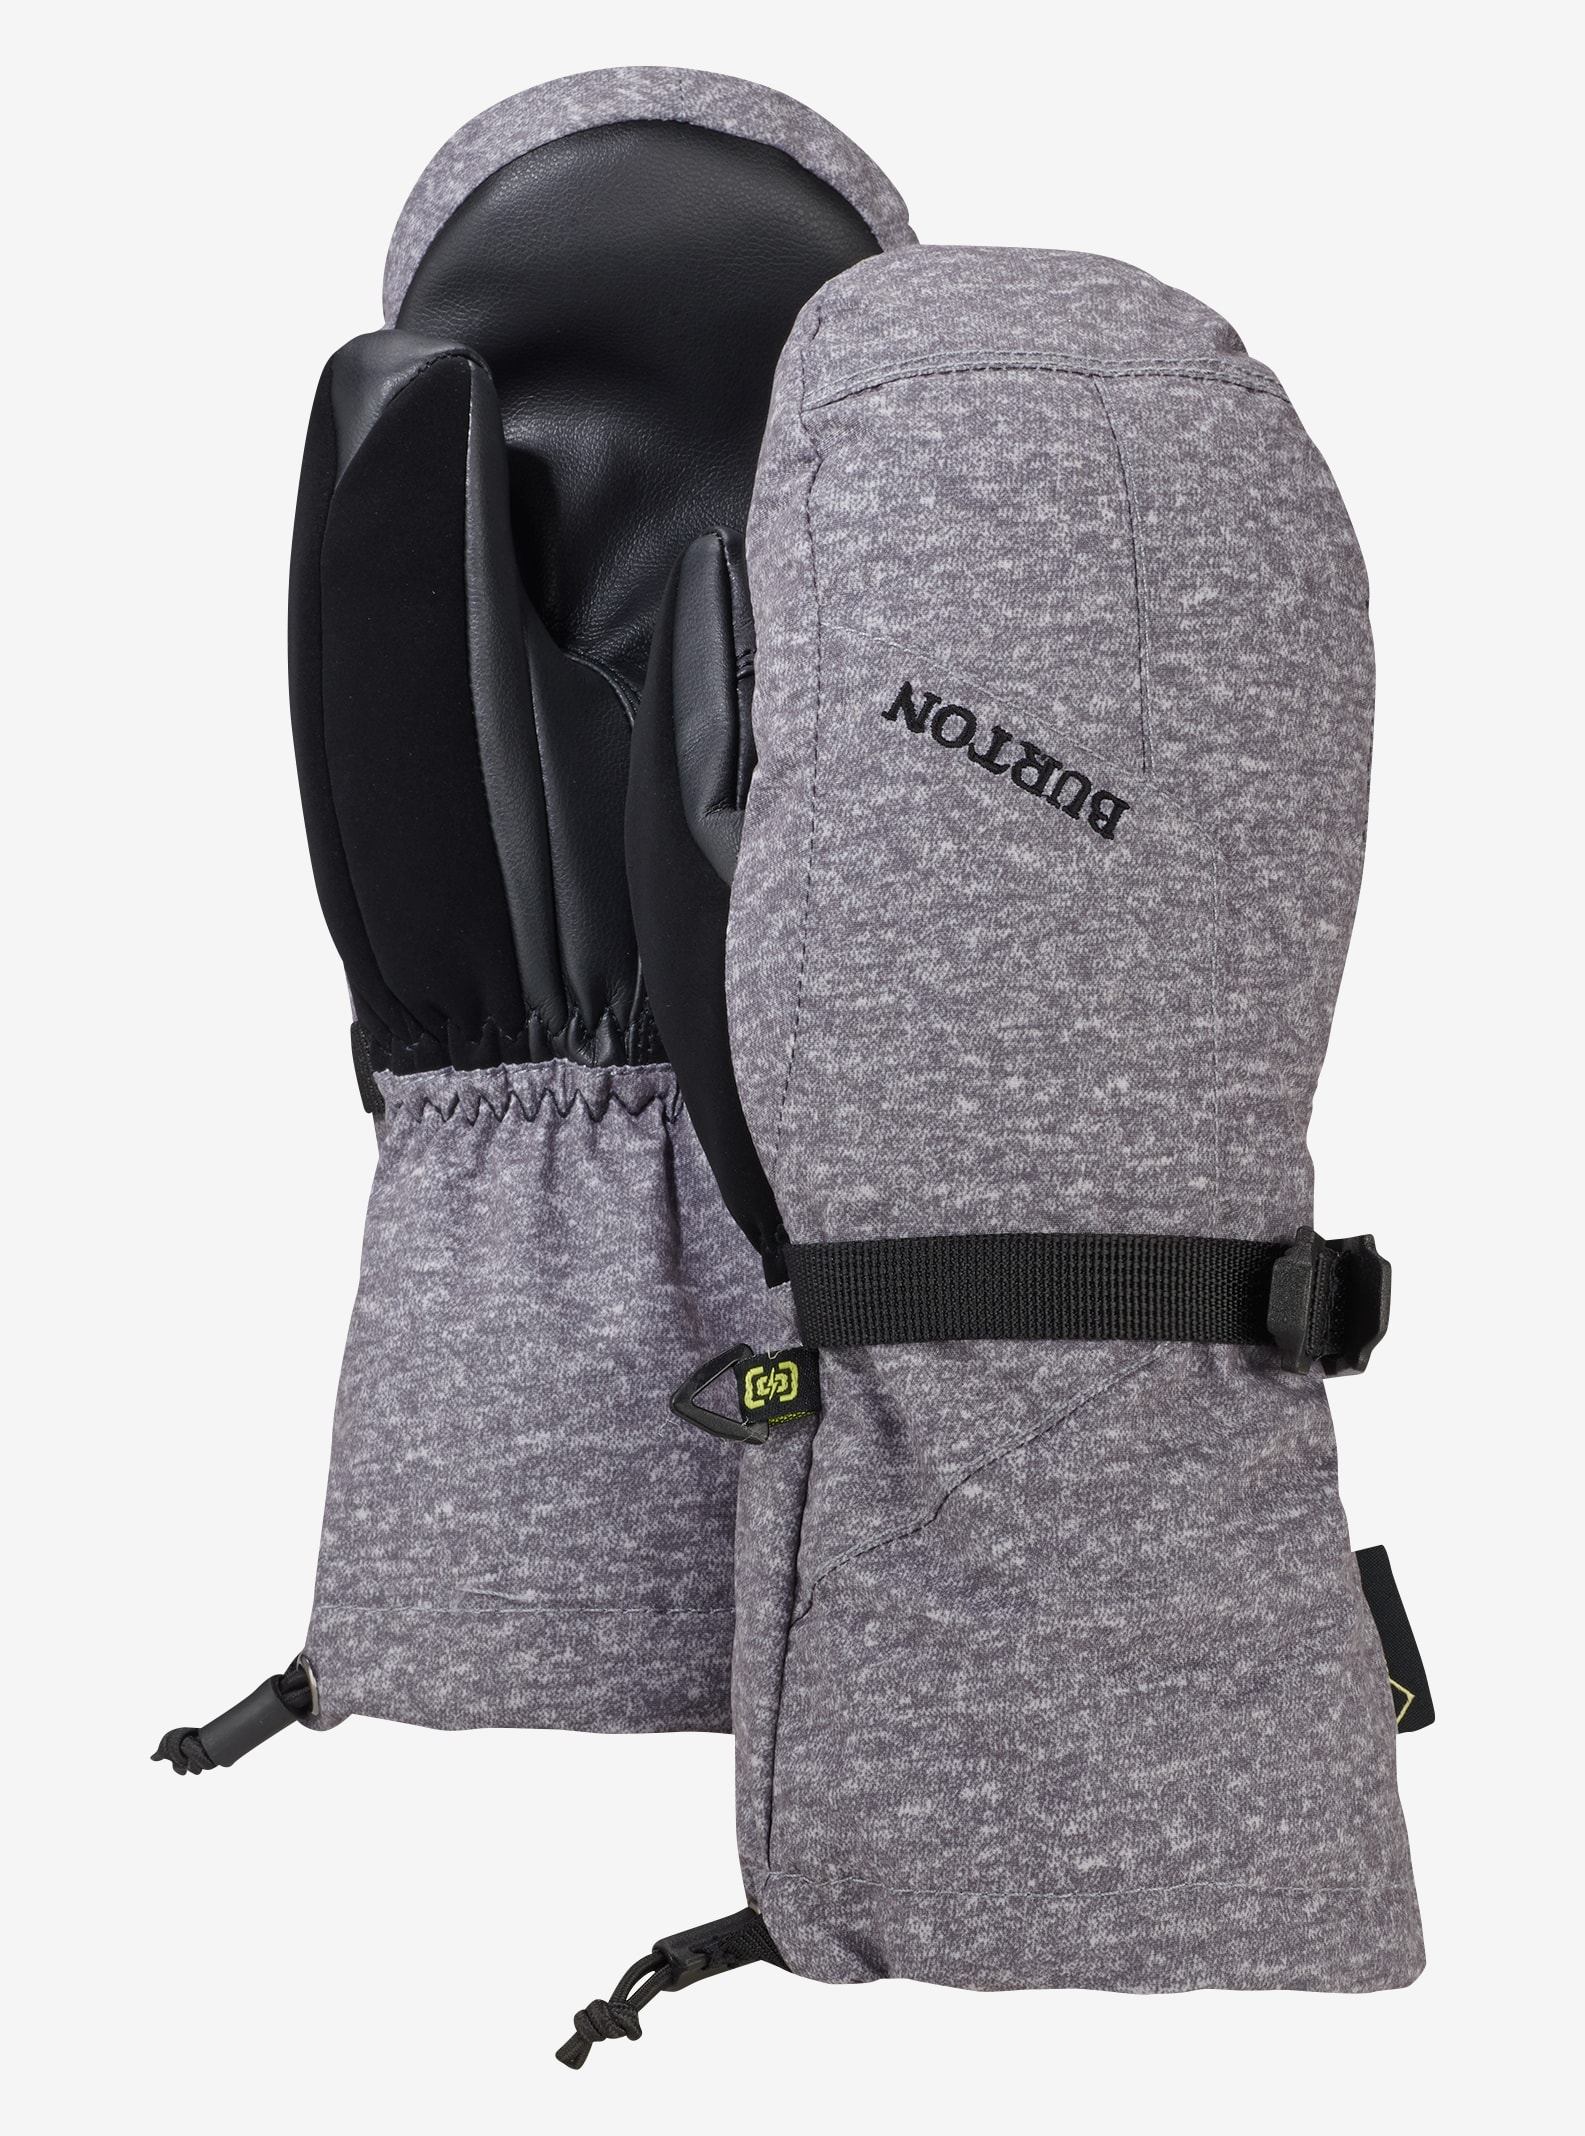 Kids' Burton GORE-TEX® Mitt shown in Monument Heather